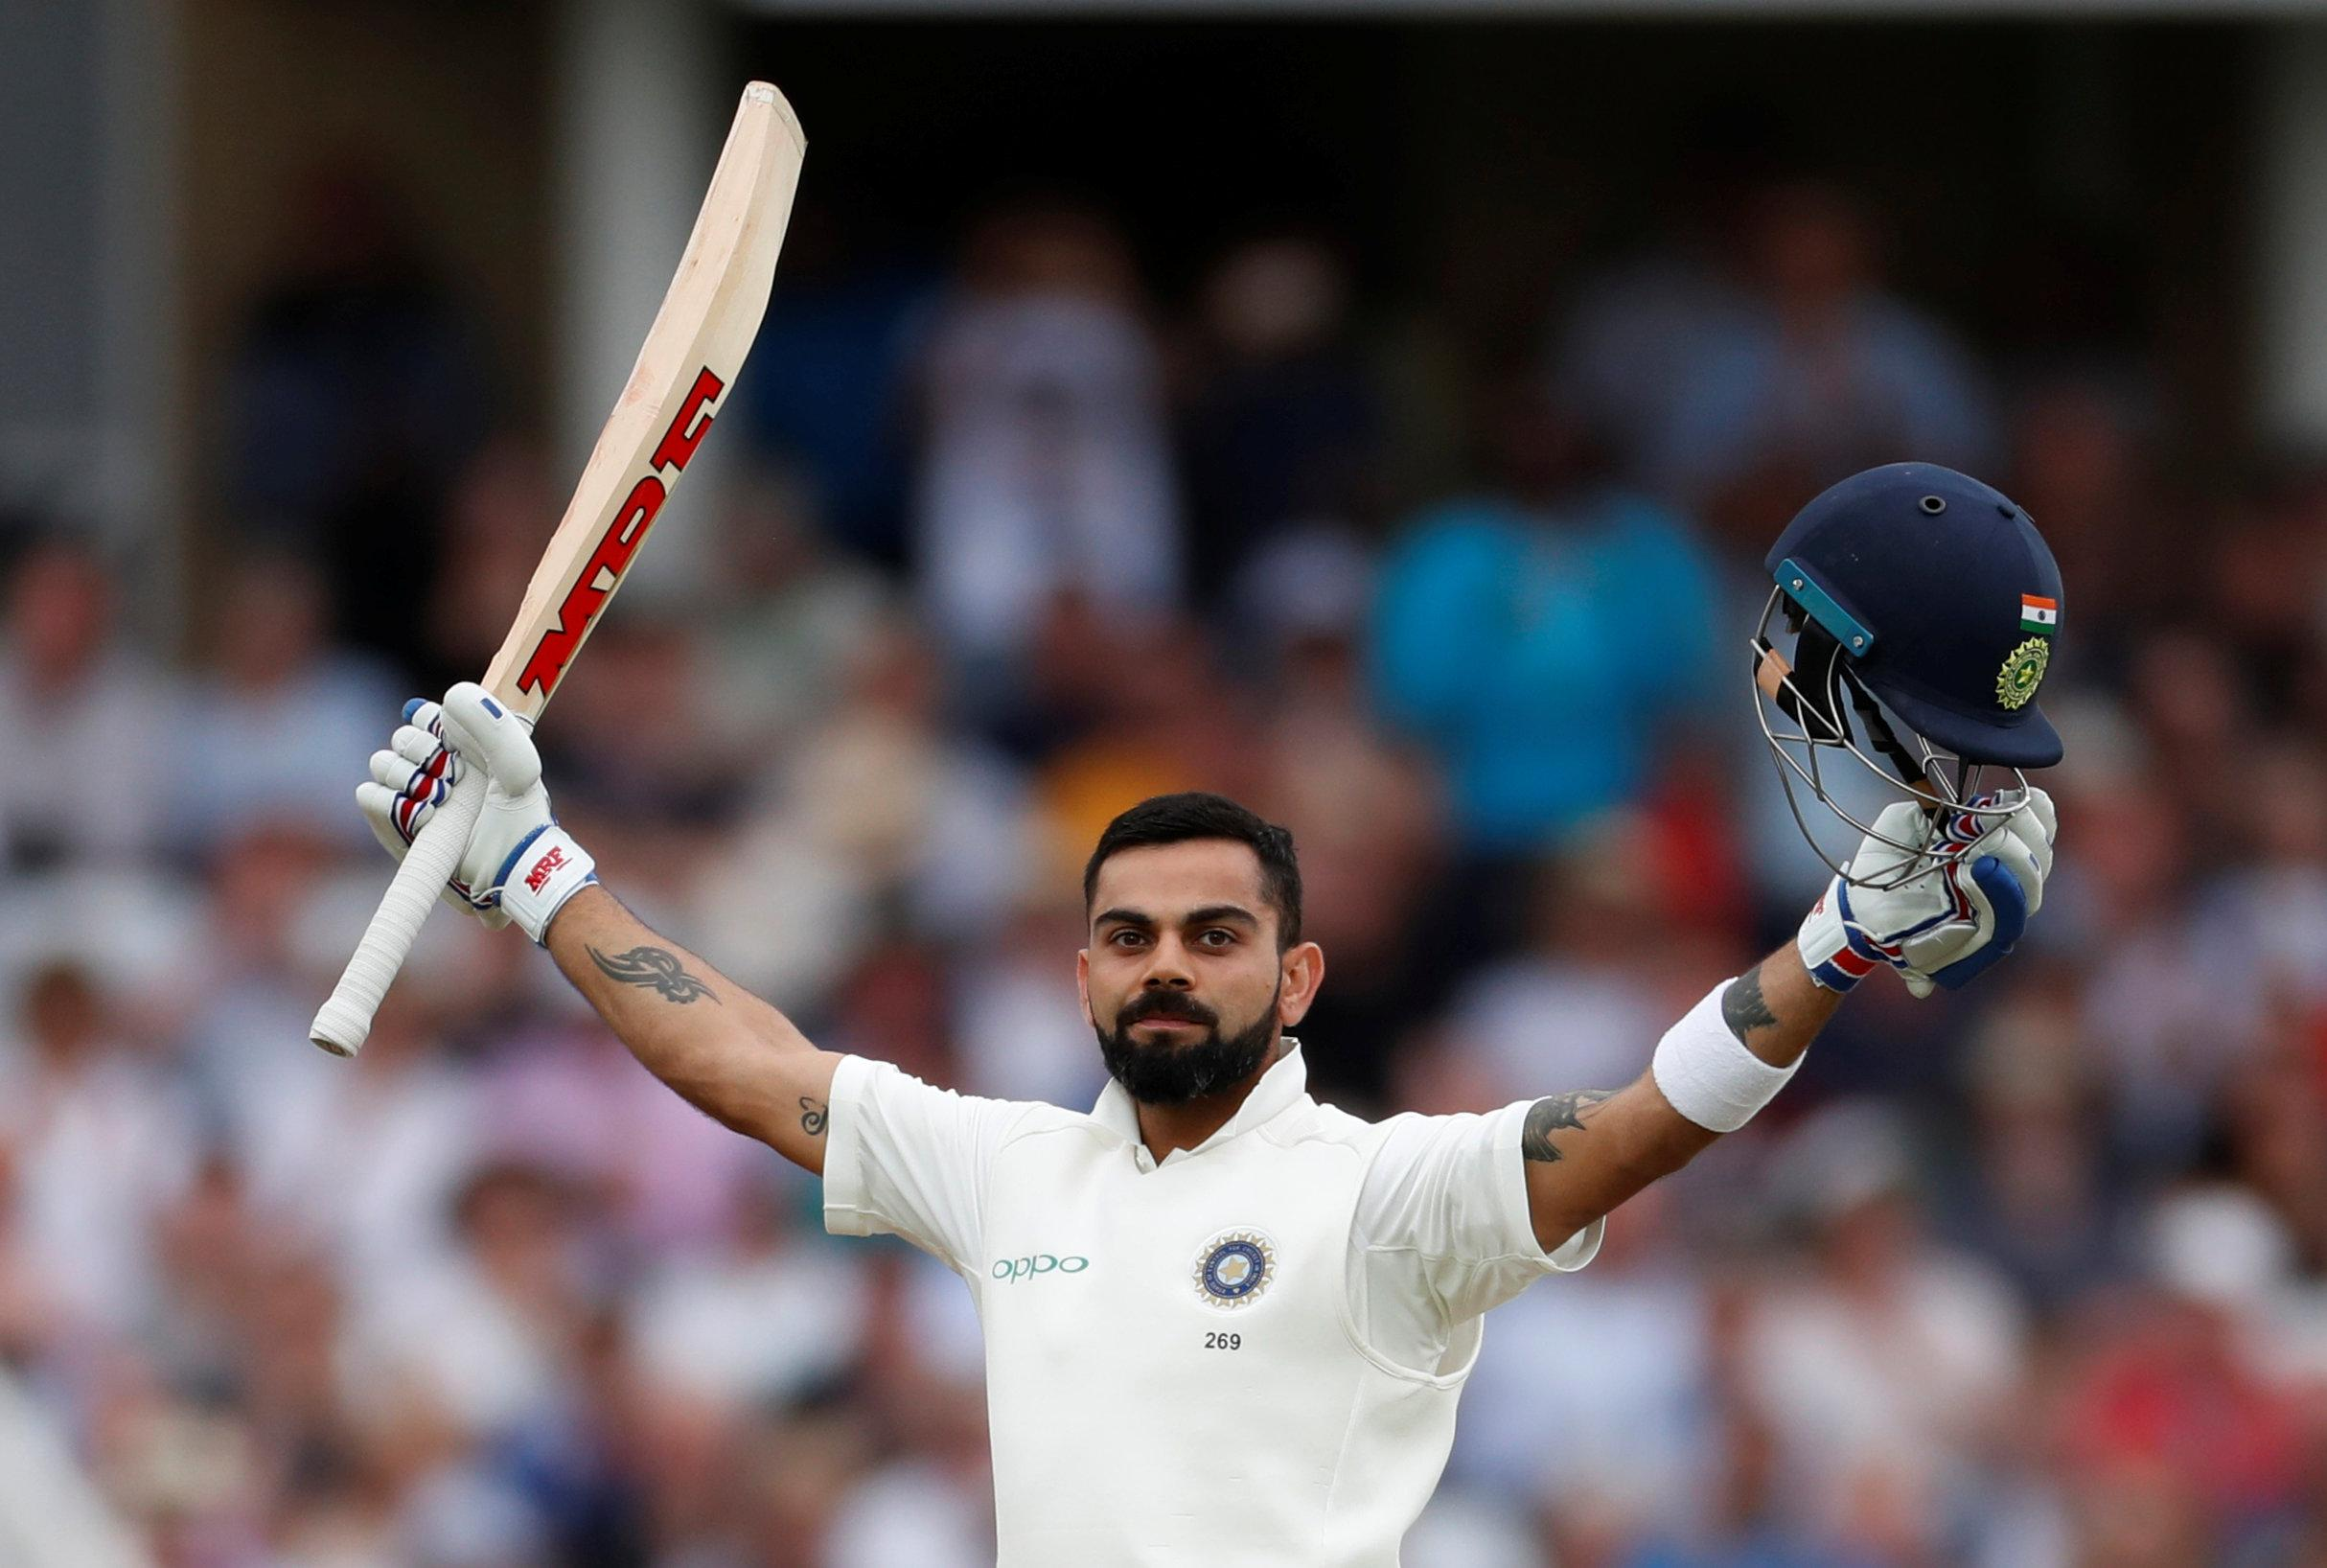 Kohli scored 97 and 103 in Nottingham, the second time he has scored exactly 200 in a Test match in this series